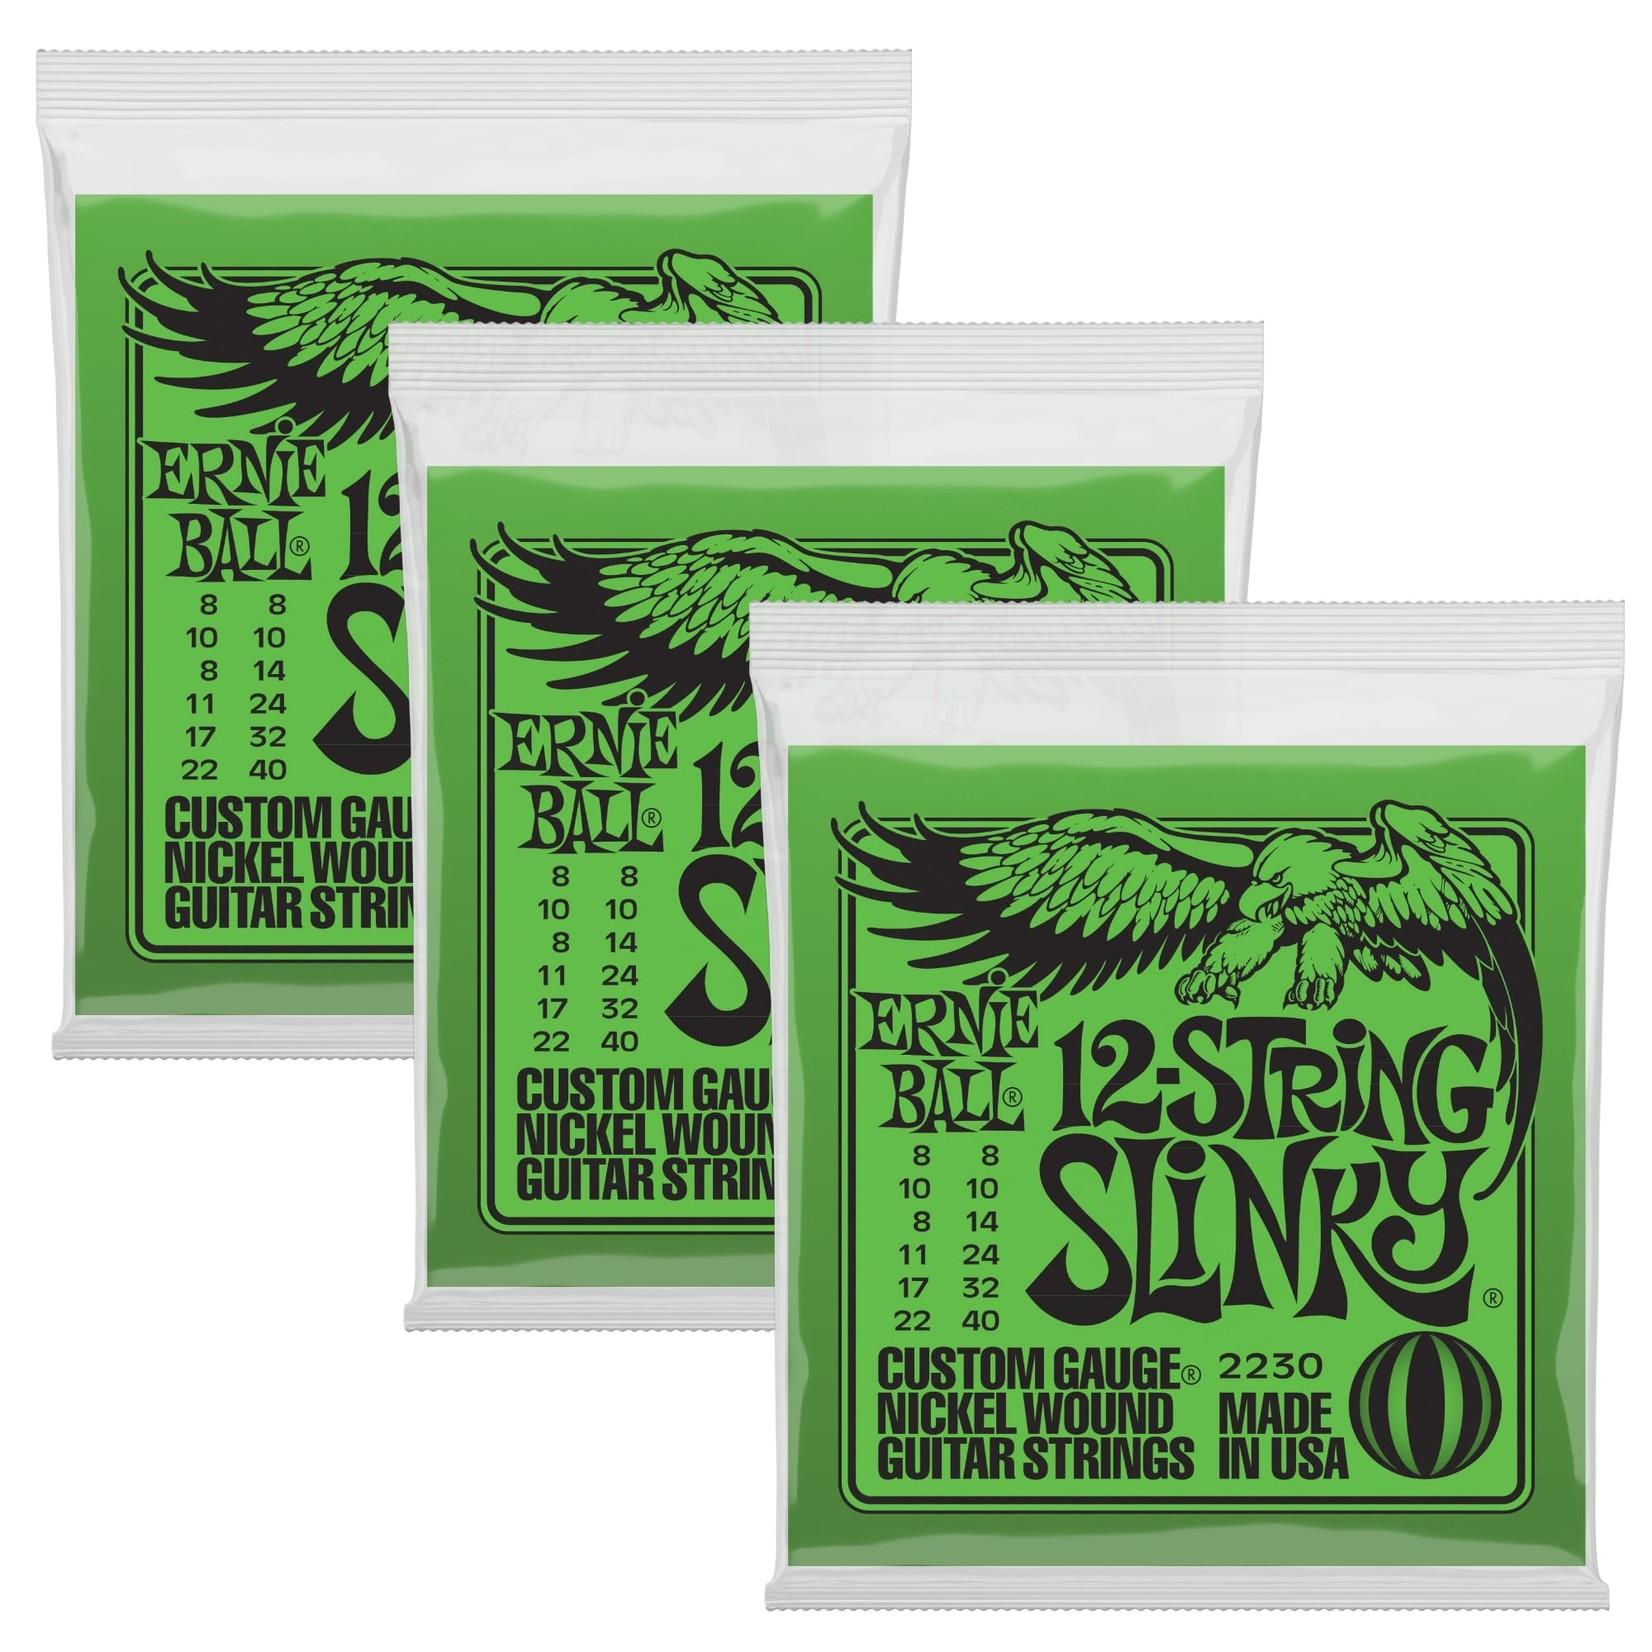 Ernie Ball 3x (3 sets) Ernie Ball 12-String Slinky Custom Gauge Nickel Wound Guitar Strings (8/22, 8/40), 2230